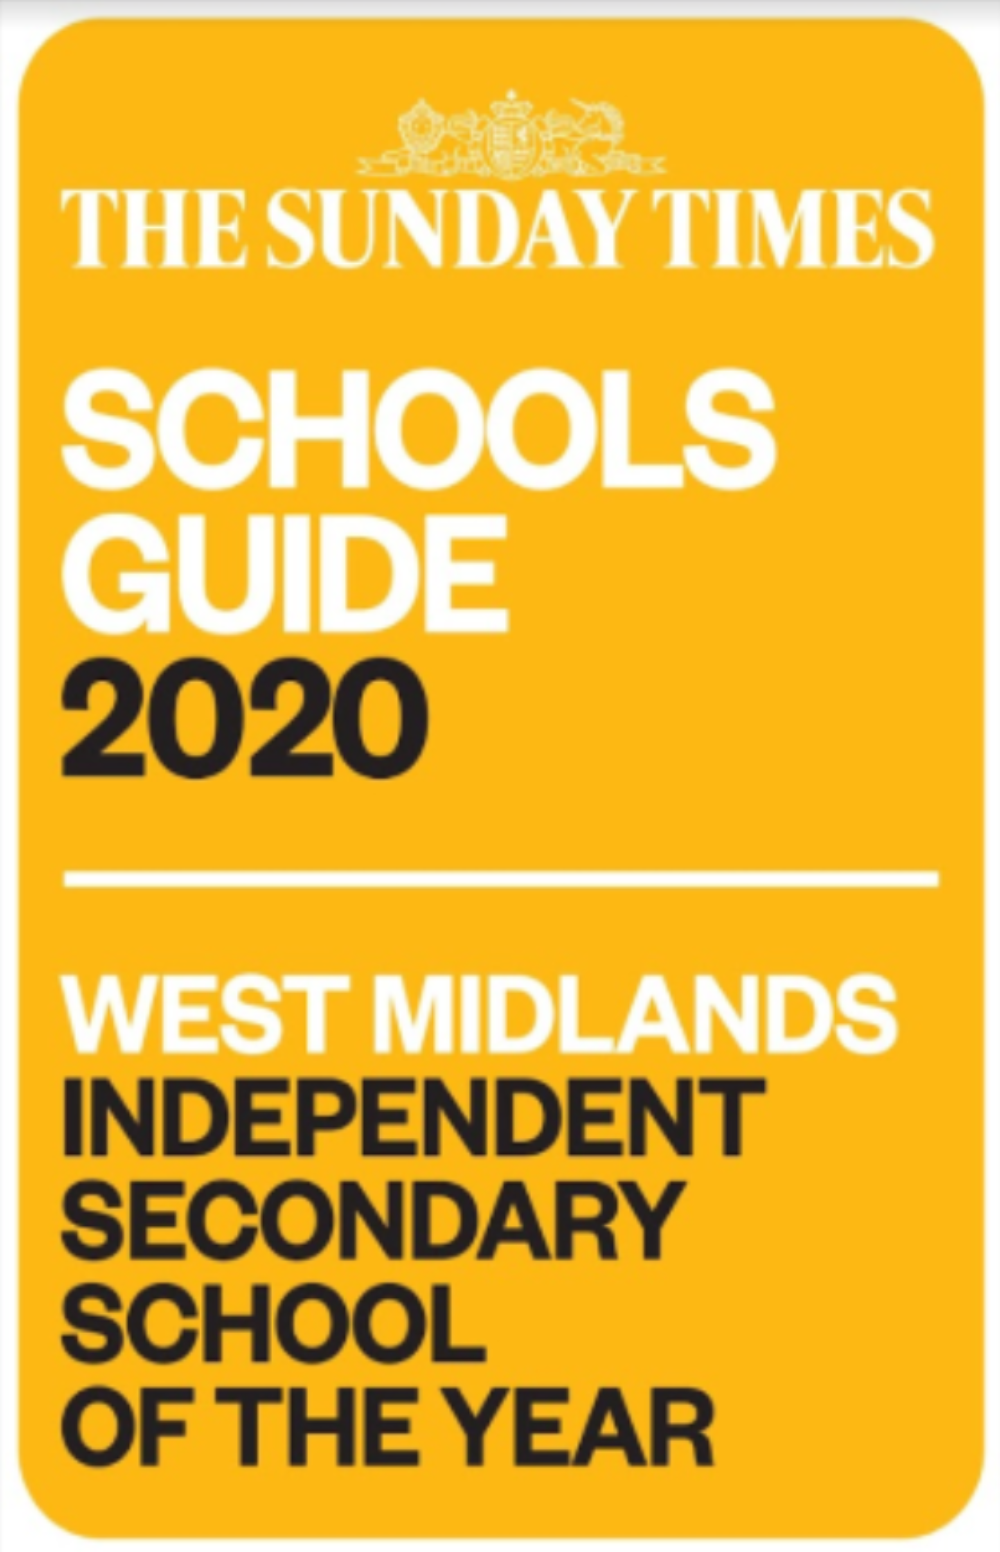 Kehs Named West Midlands Independent Secondary School Of The Year